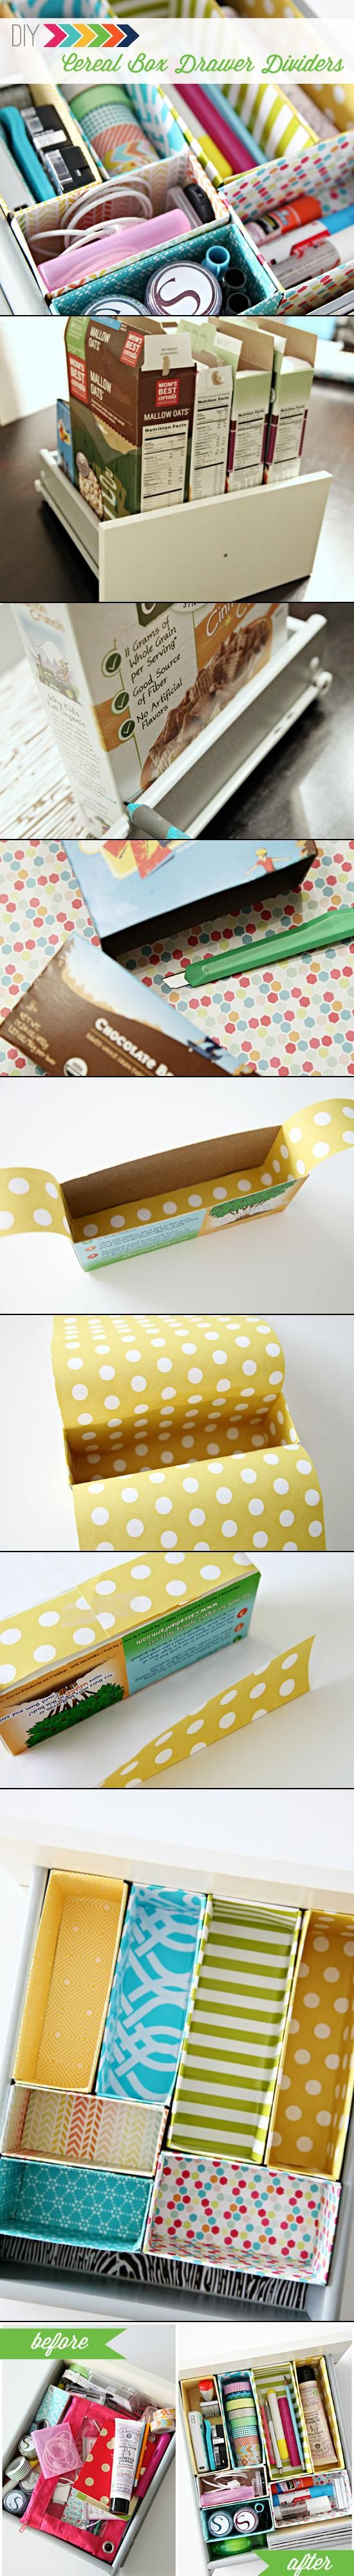 DIY Cereal Box Drawer Dividers, by I Heart Organizing. - I could use a little more organization for the Ikea Alex drawer unit I have. I don't eat cereal, but I could use other boxes.